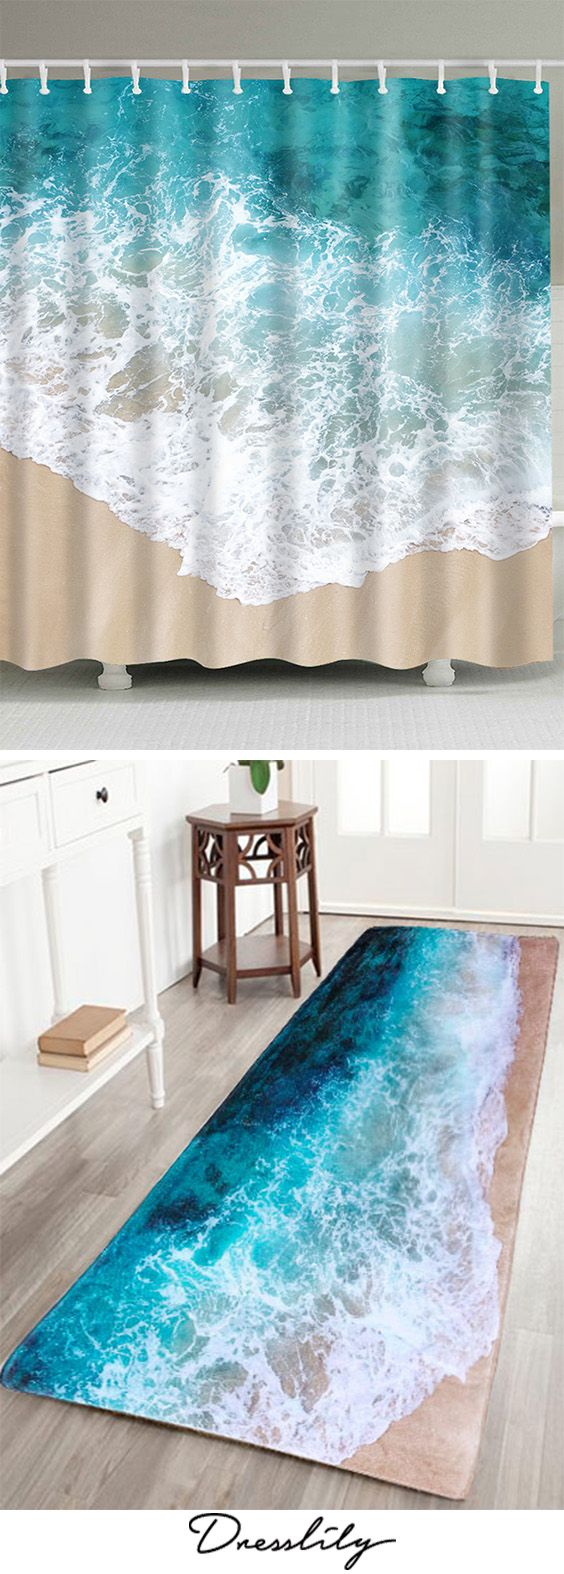 Find Shower Curtains and Bath Rugs at Dresslily.com. Enjoy Free Shipping & browse our great selection of Shower Curtains that will look great in your bathroom!#home#bathroom#showercurtain#bathrugs